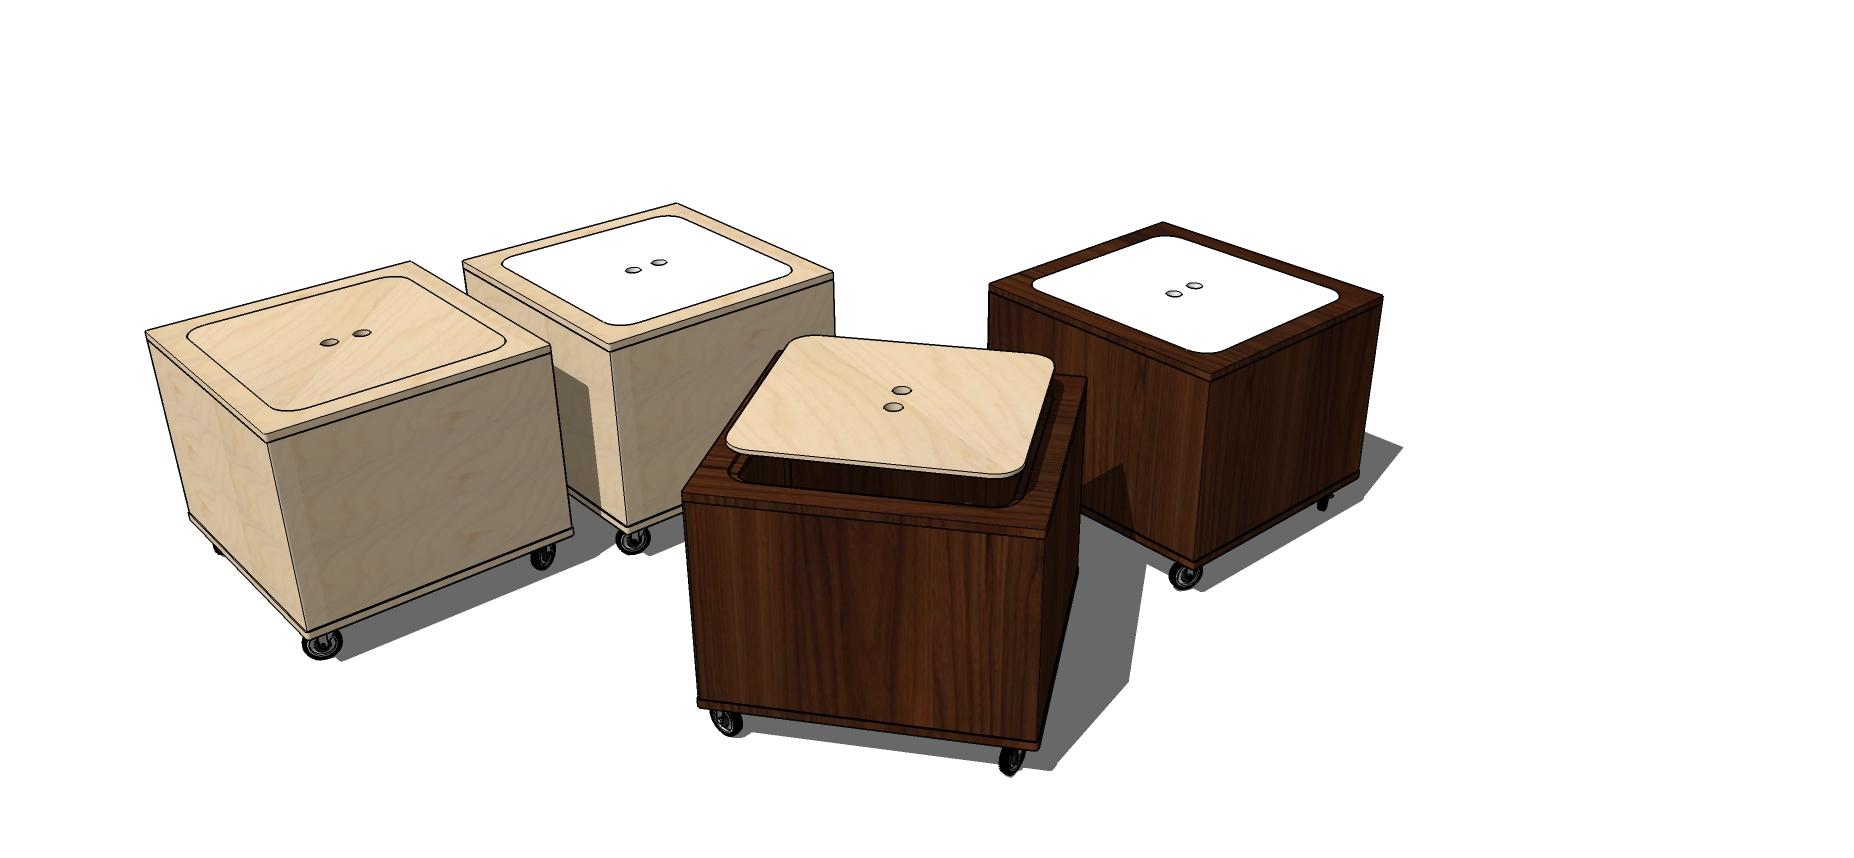 just plain squares - mod mom furniture unveils new readytoassemble product line